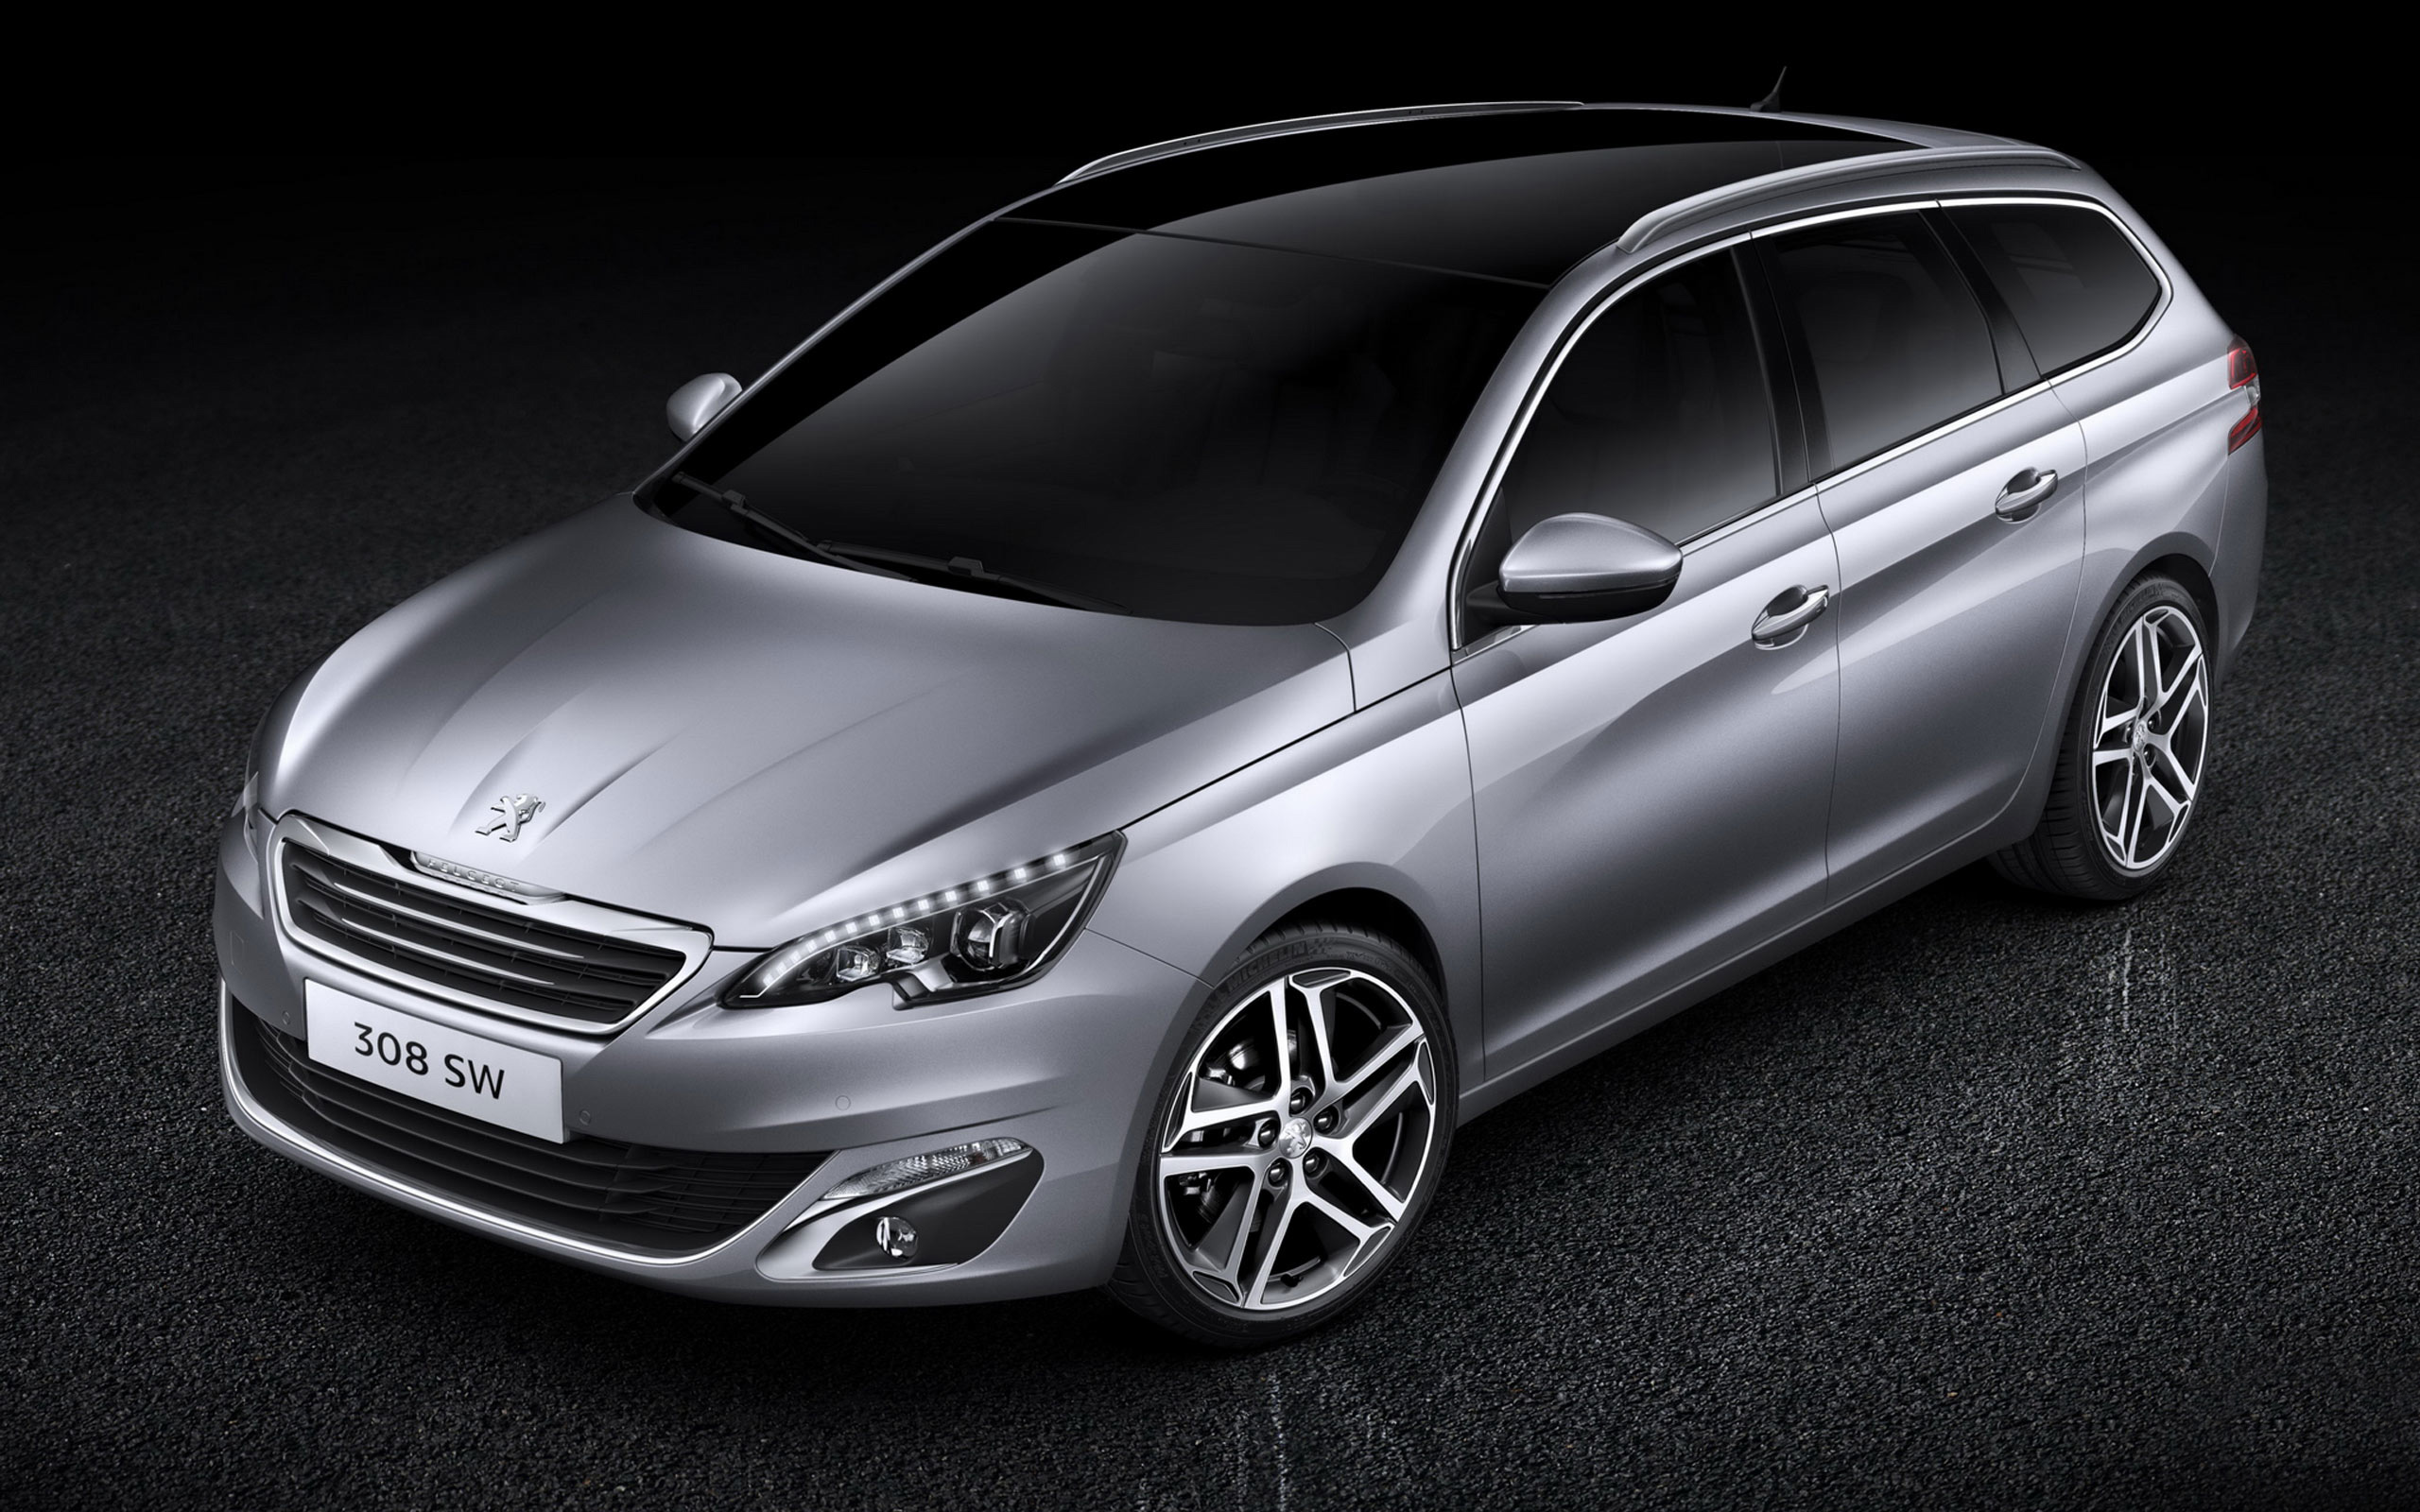 2014 peugeot 308 sw wallpaper hd car wallpapers id 4024. Black Bedroom Furniture Sets. Home Design Ideas